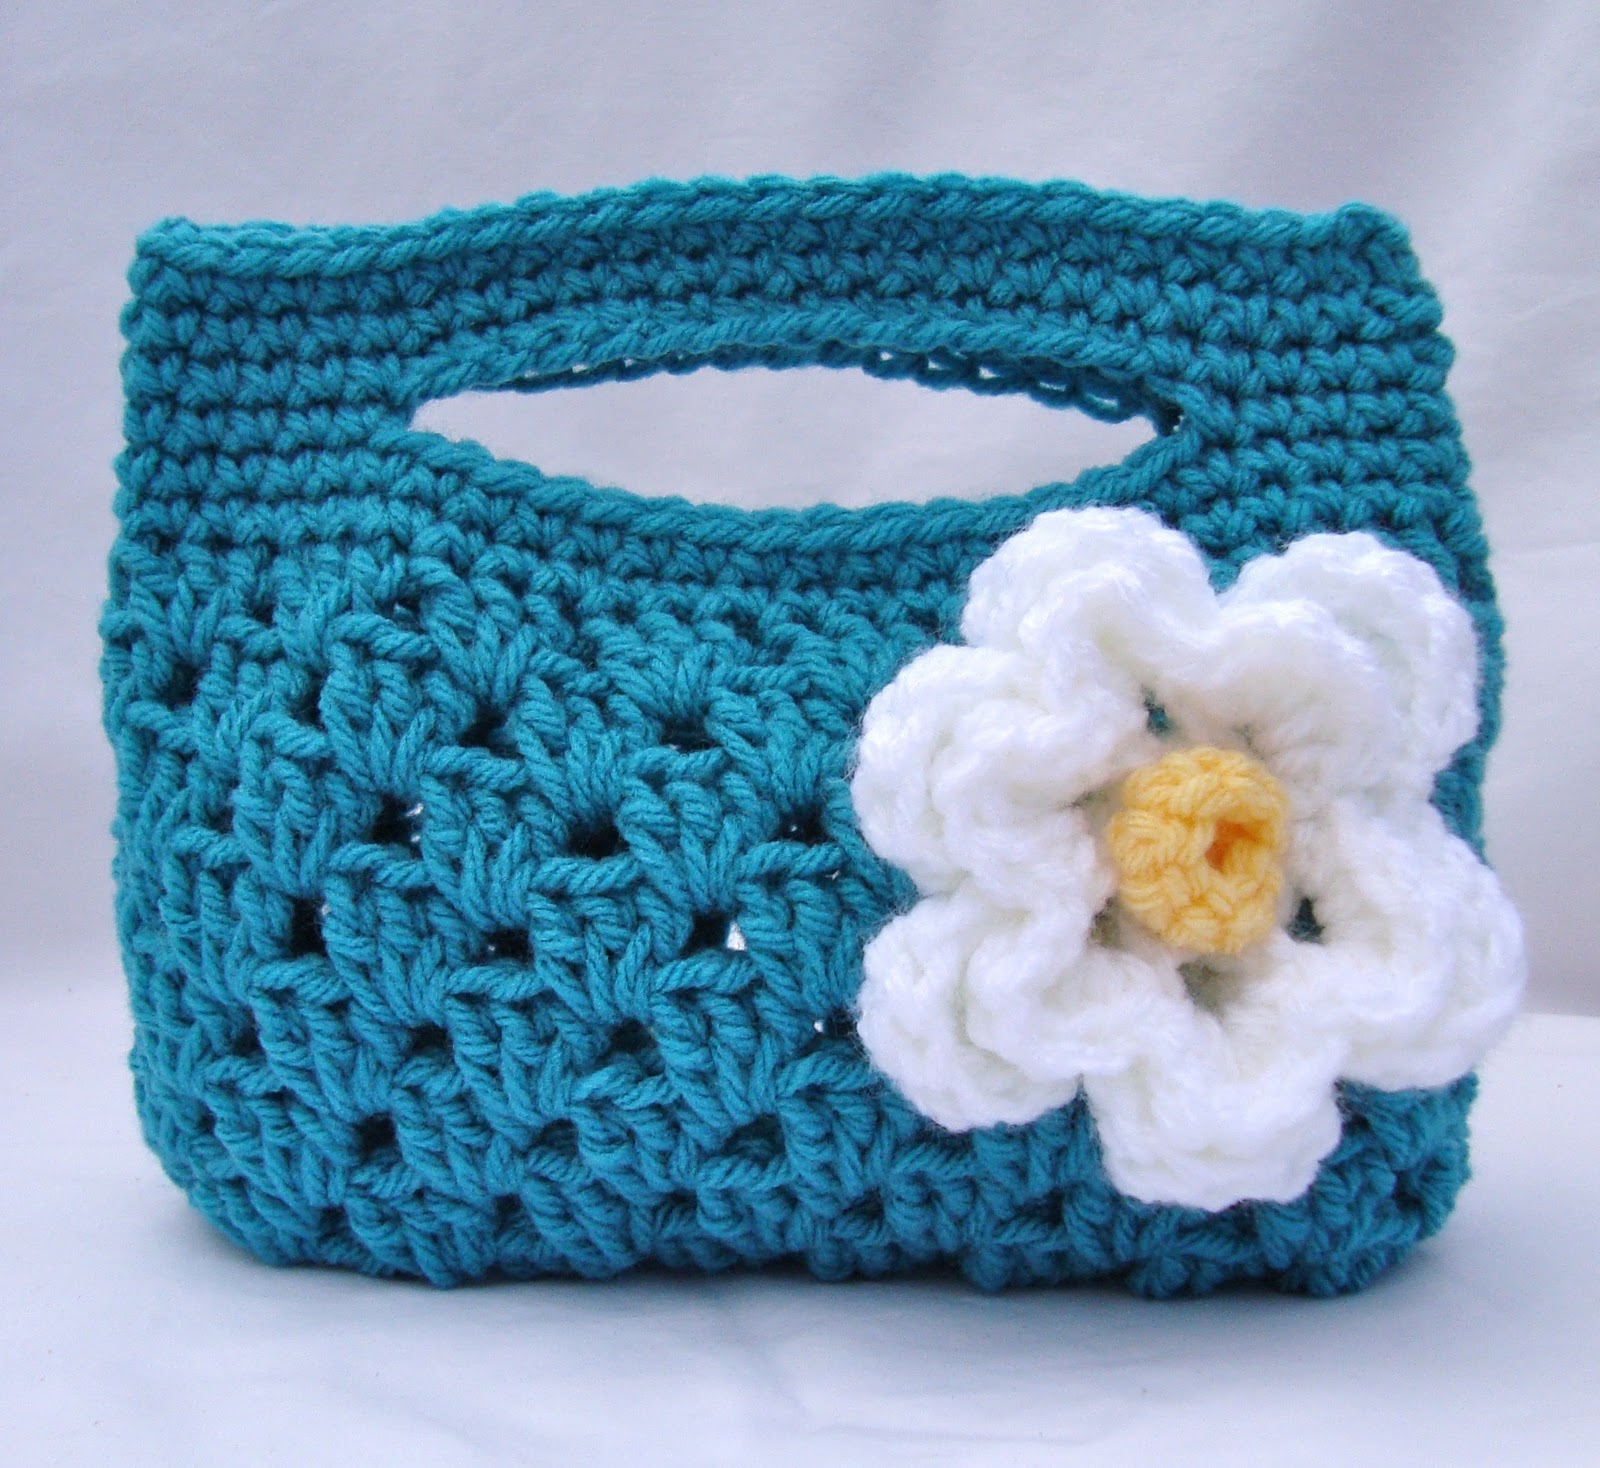 Crochet Small Bag : tangled happy: Granny Stripe Boutique Bag